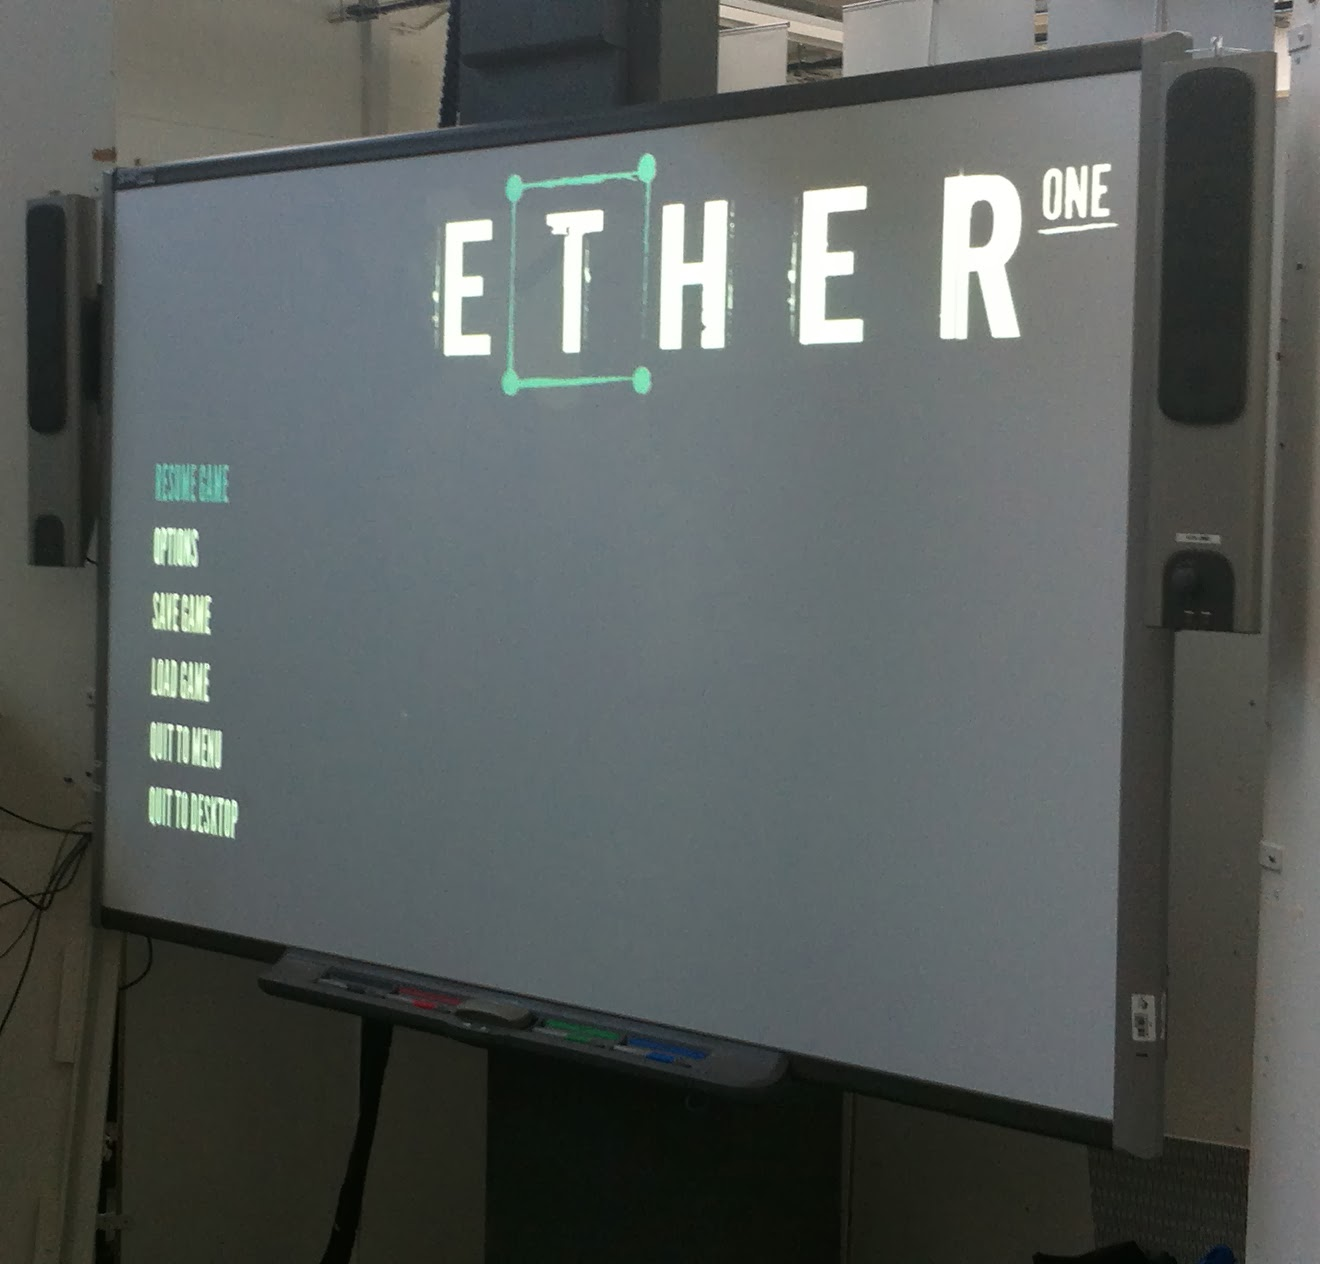 http://www.ether-game.com/